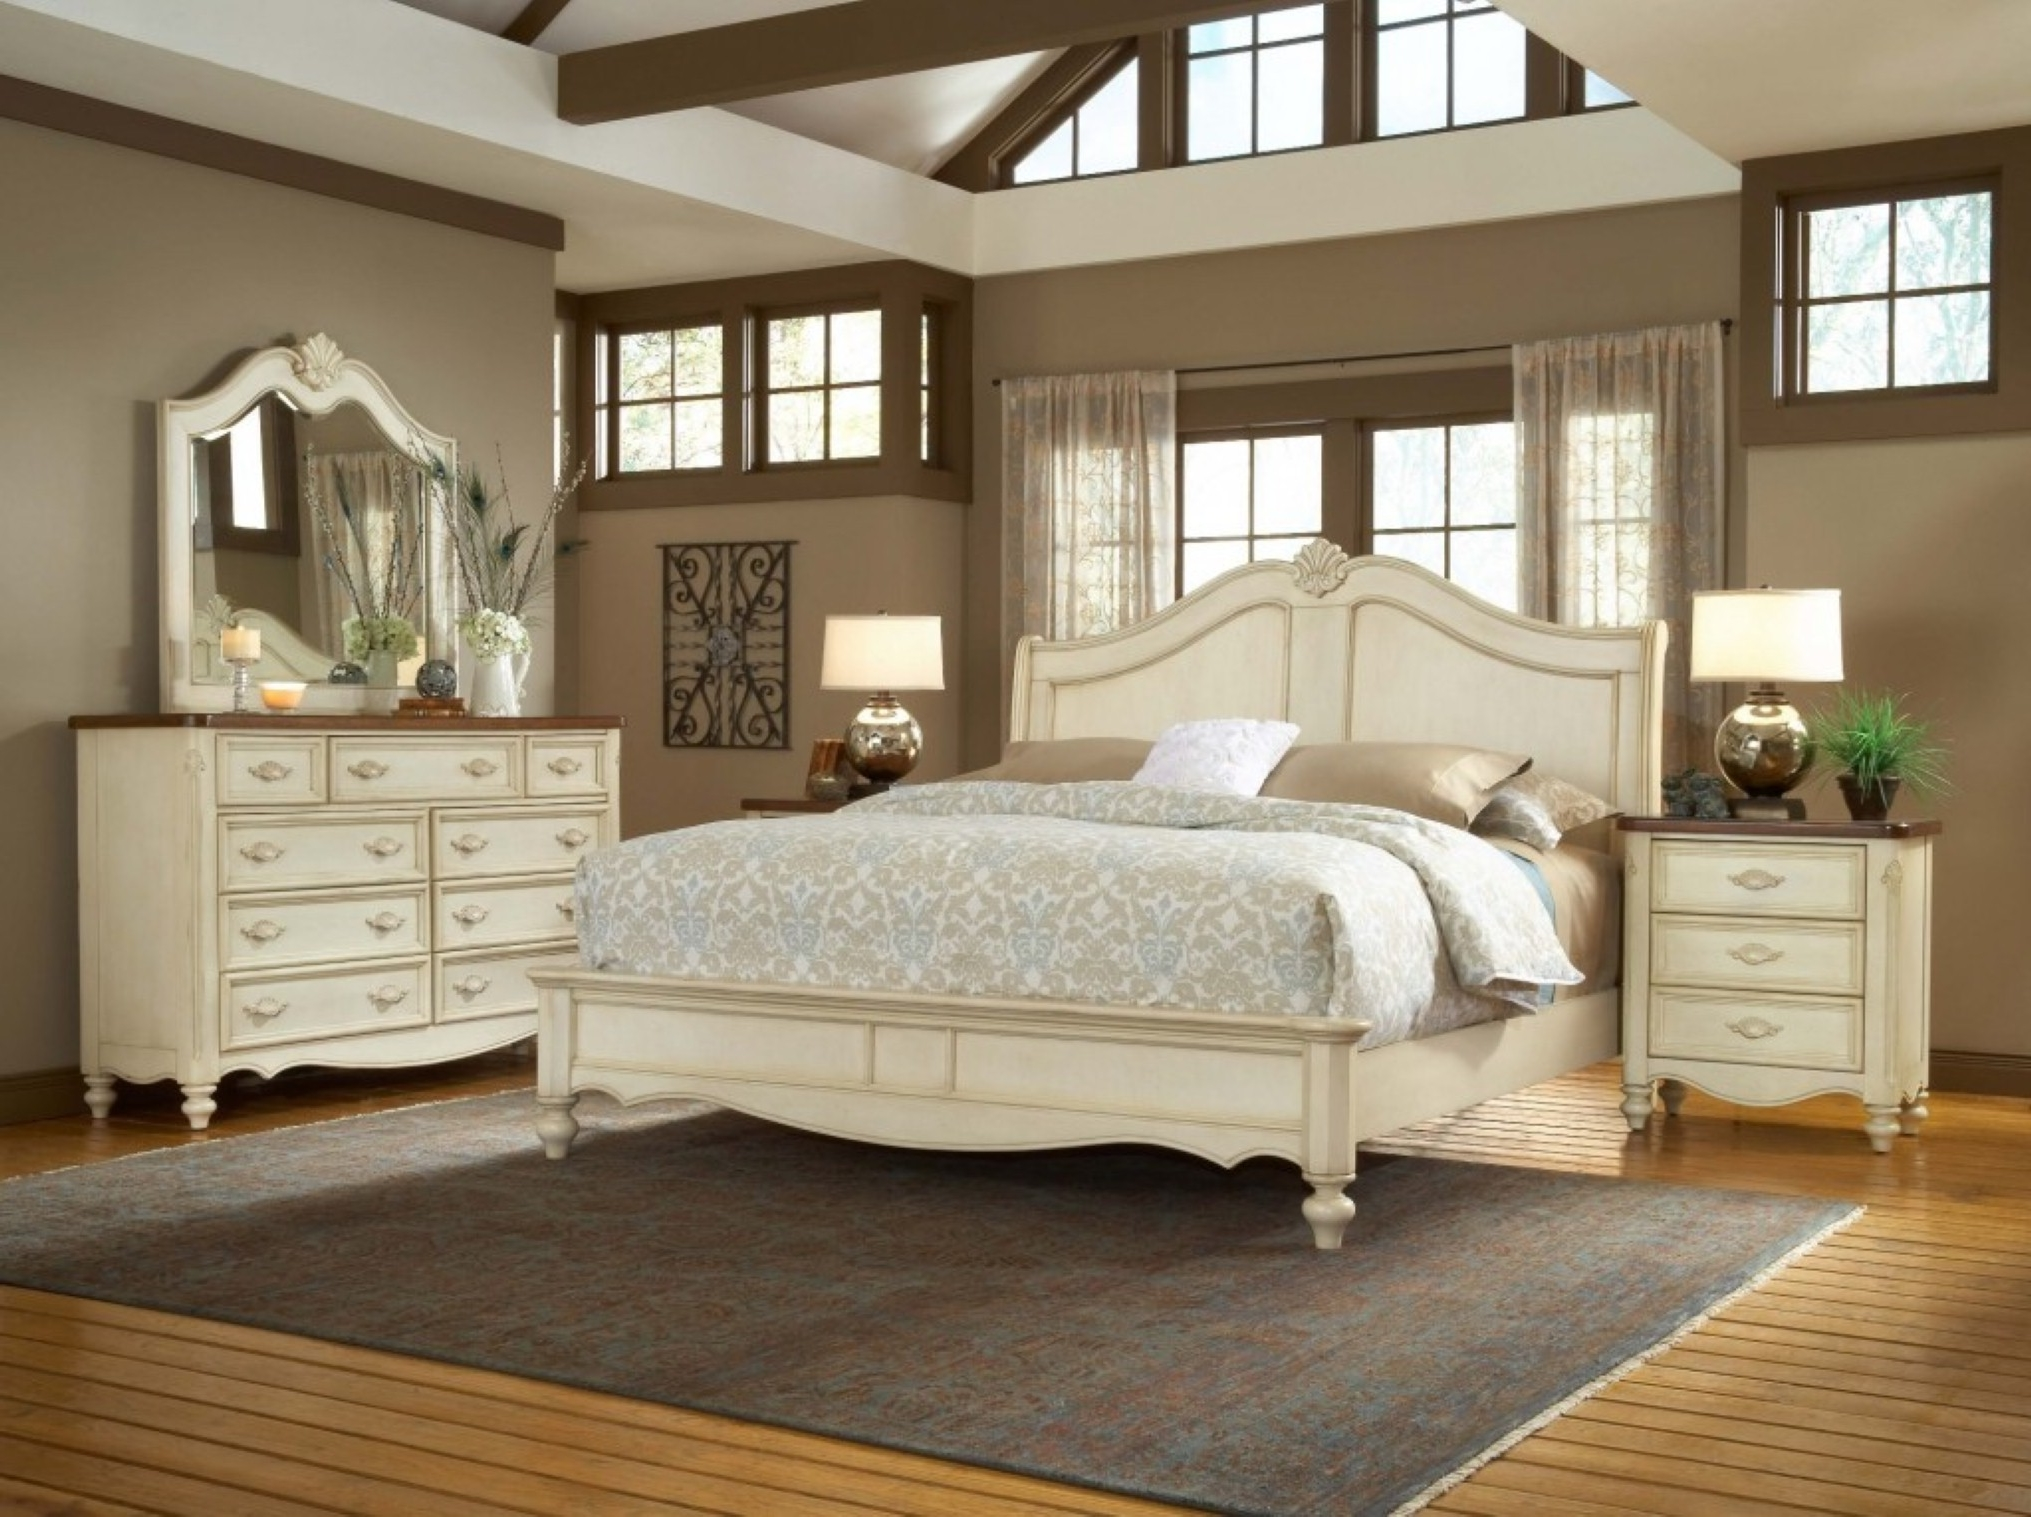 Neat Inspirational Cream Furniture As Cream Painted Bedroom Furniture With Added Design Bedroom And Exquisite To Various Settings Layout Of The Room Bedroom Exquisite (View 18 of 21)